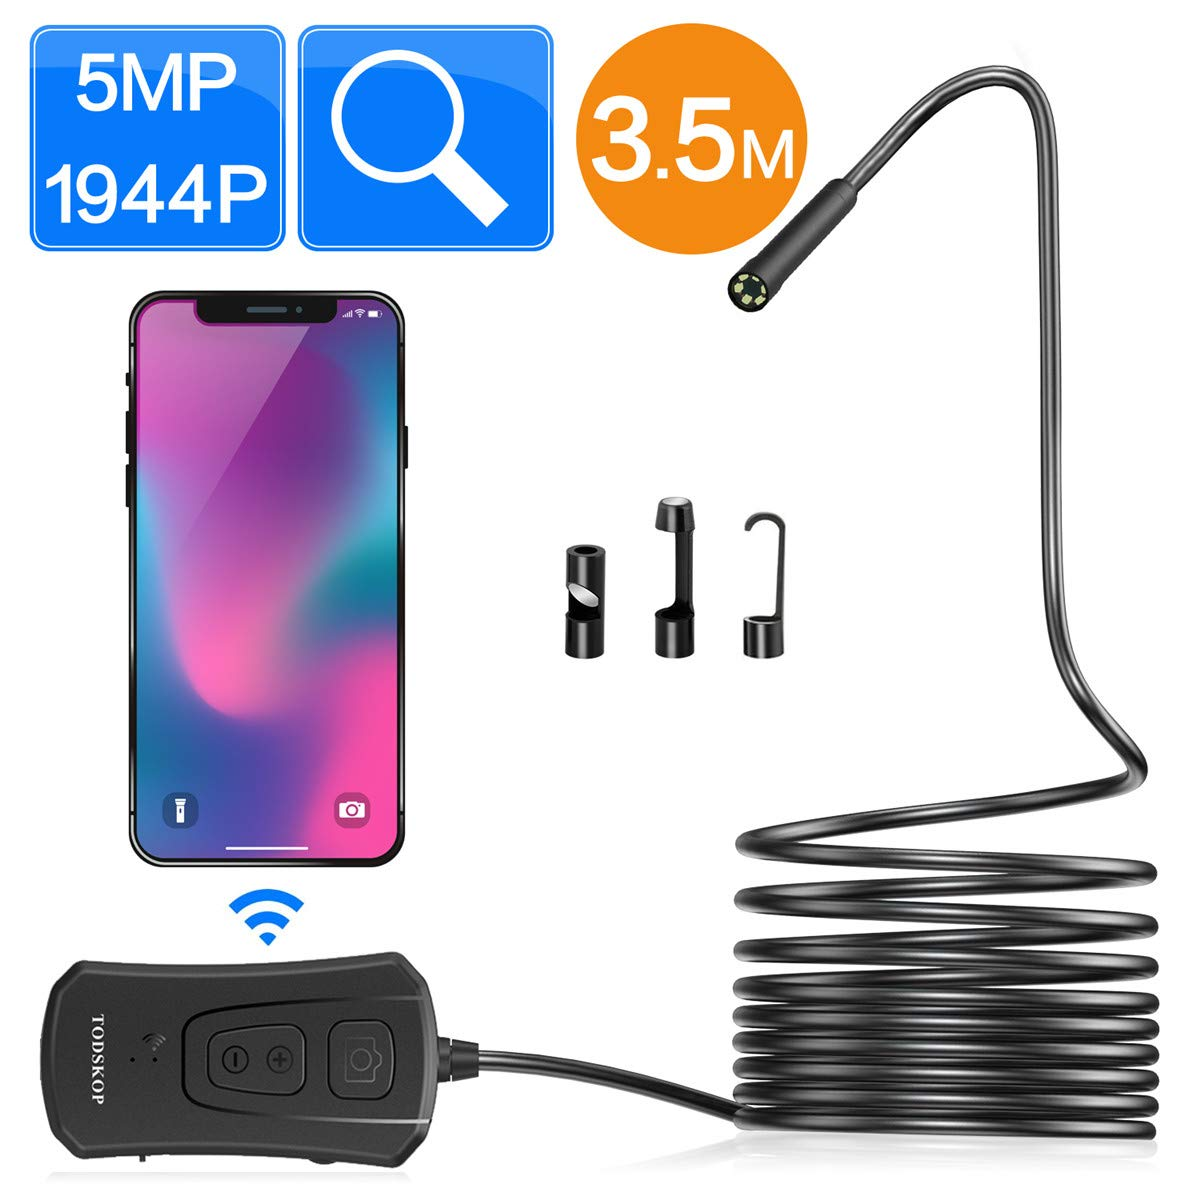 Wireless Endoscope Camera, TODSKOP 5.0MP WiFi Borescope Inspection Camera Waterproof IP67 Flexible Snake Camera 1944P HD for Android iOS Tablet PC (5MP/11.5FT)